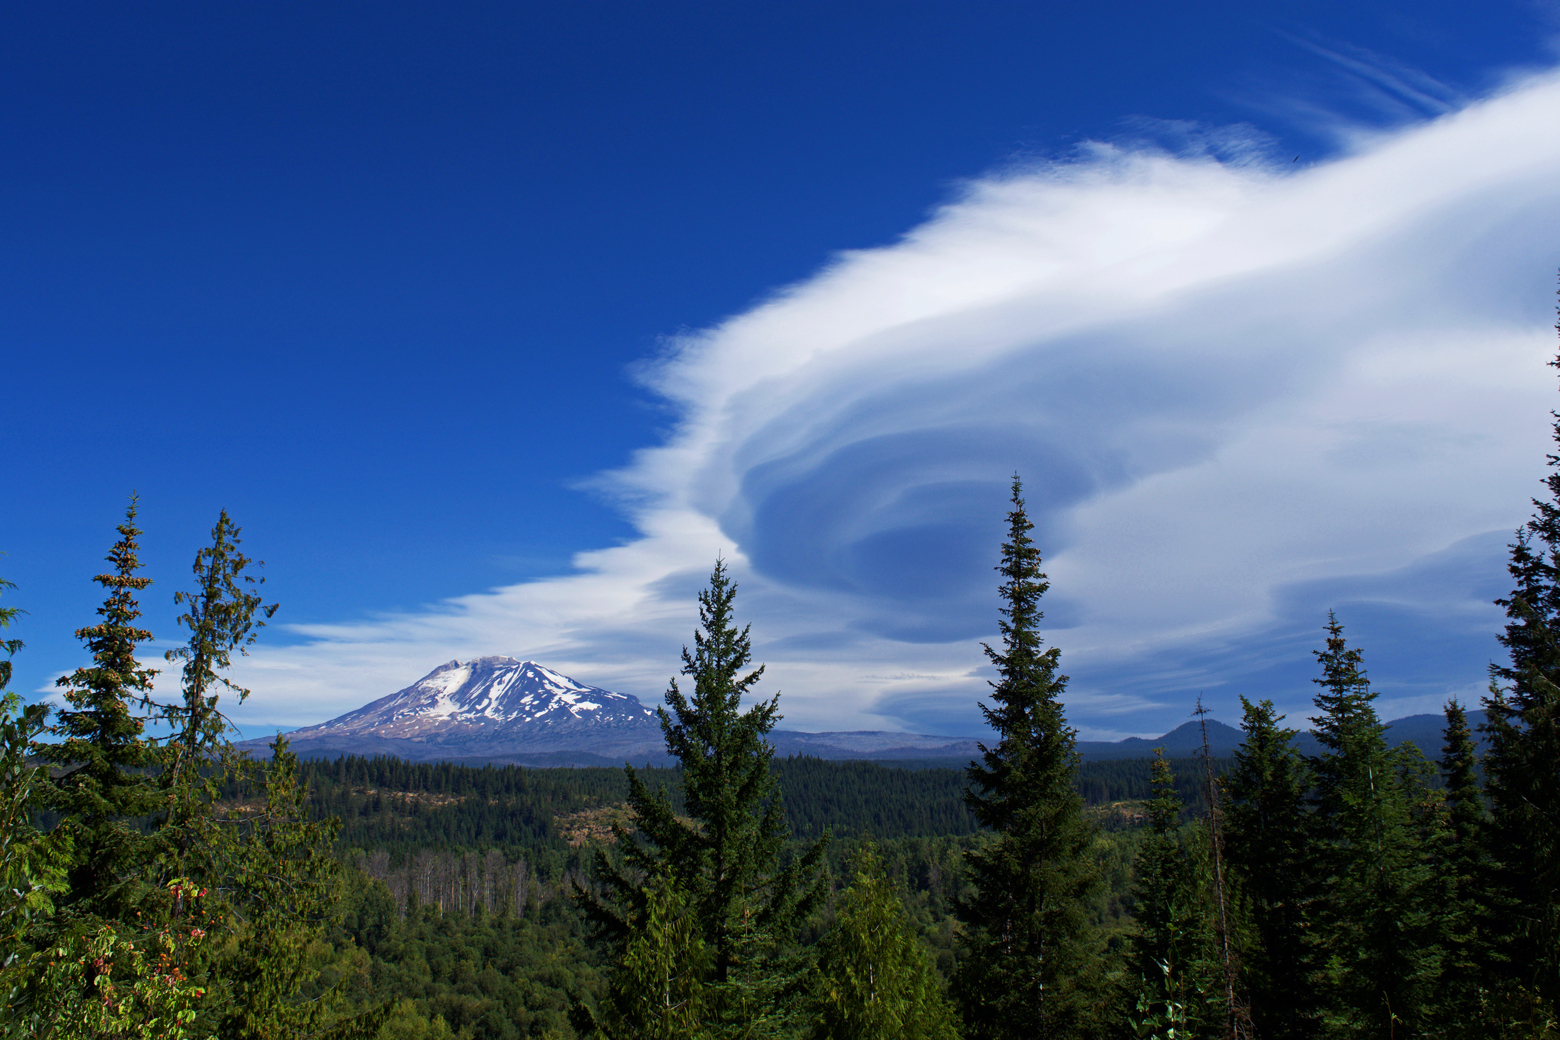 View of Mt. Adams from our campsite at Elk Meadows RV Park with an interesting cloud in the sky